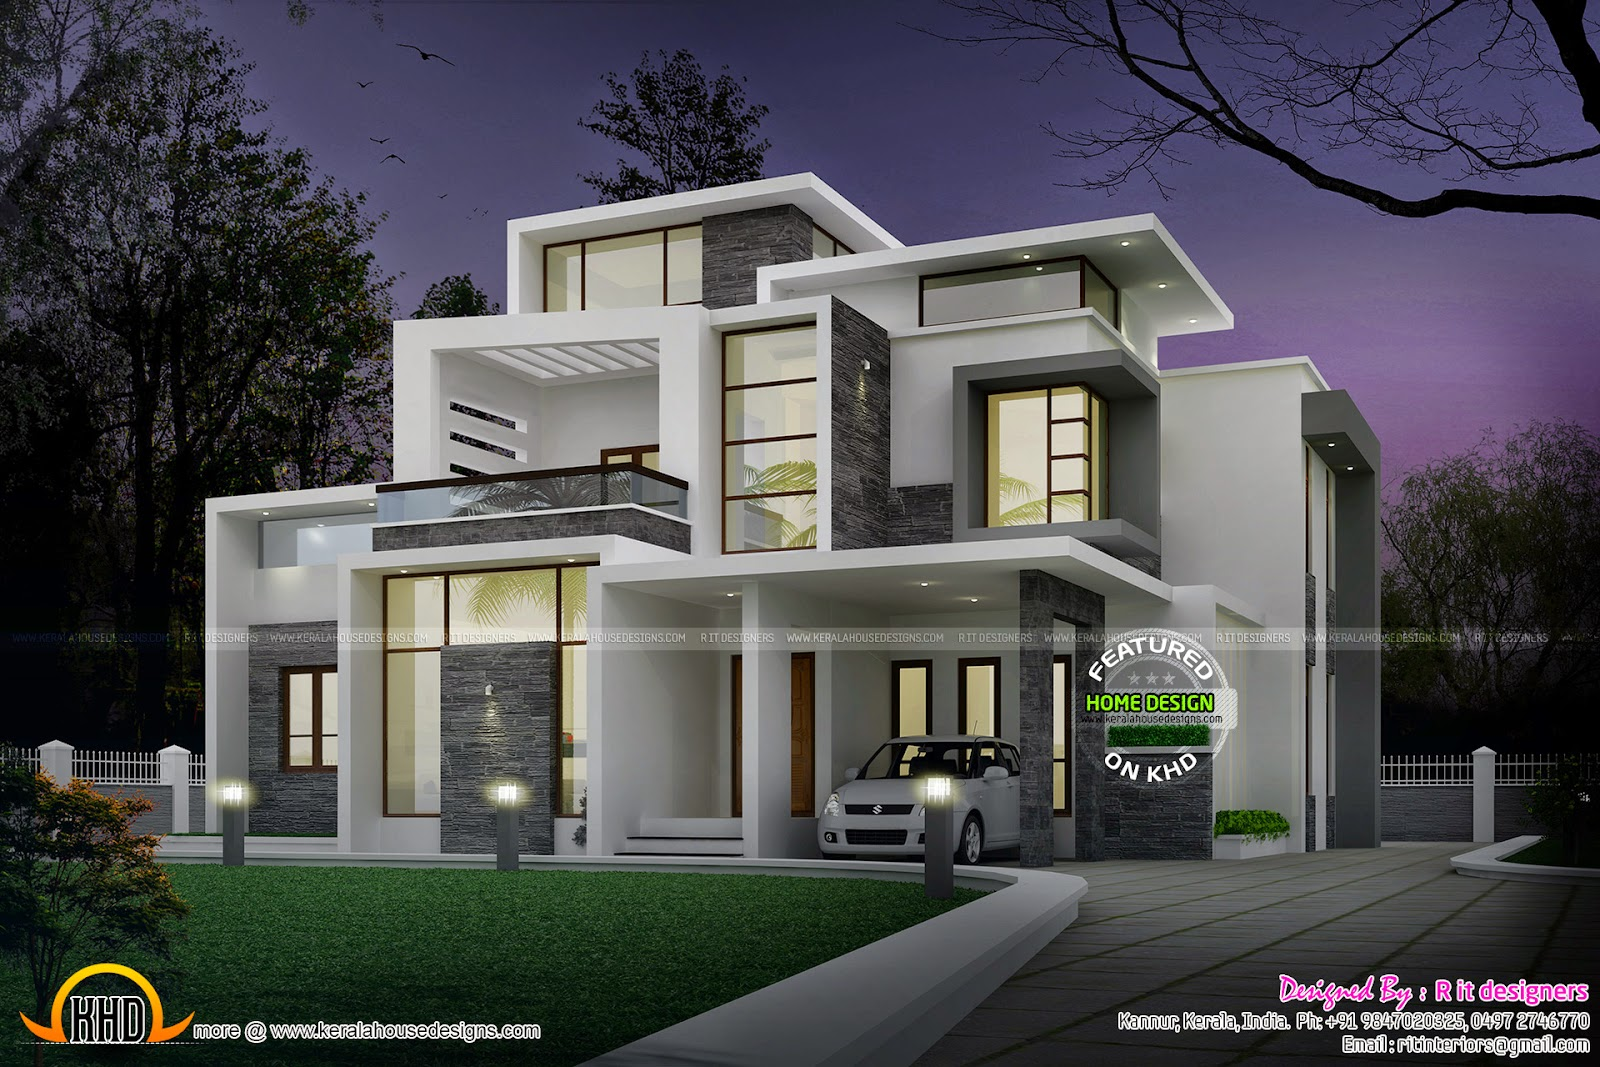 Grand contemporary home design kerala home design and for Contemporary home design